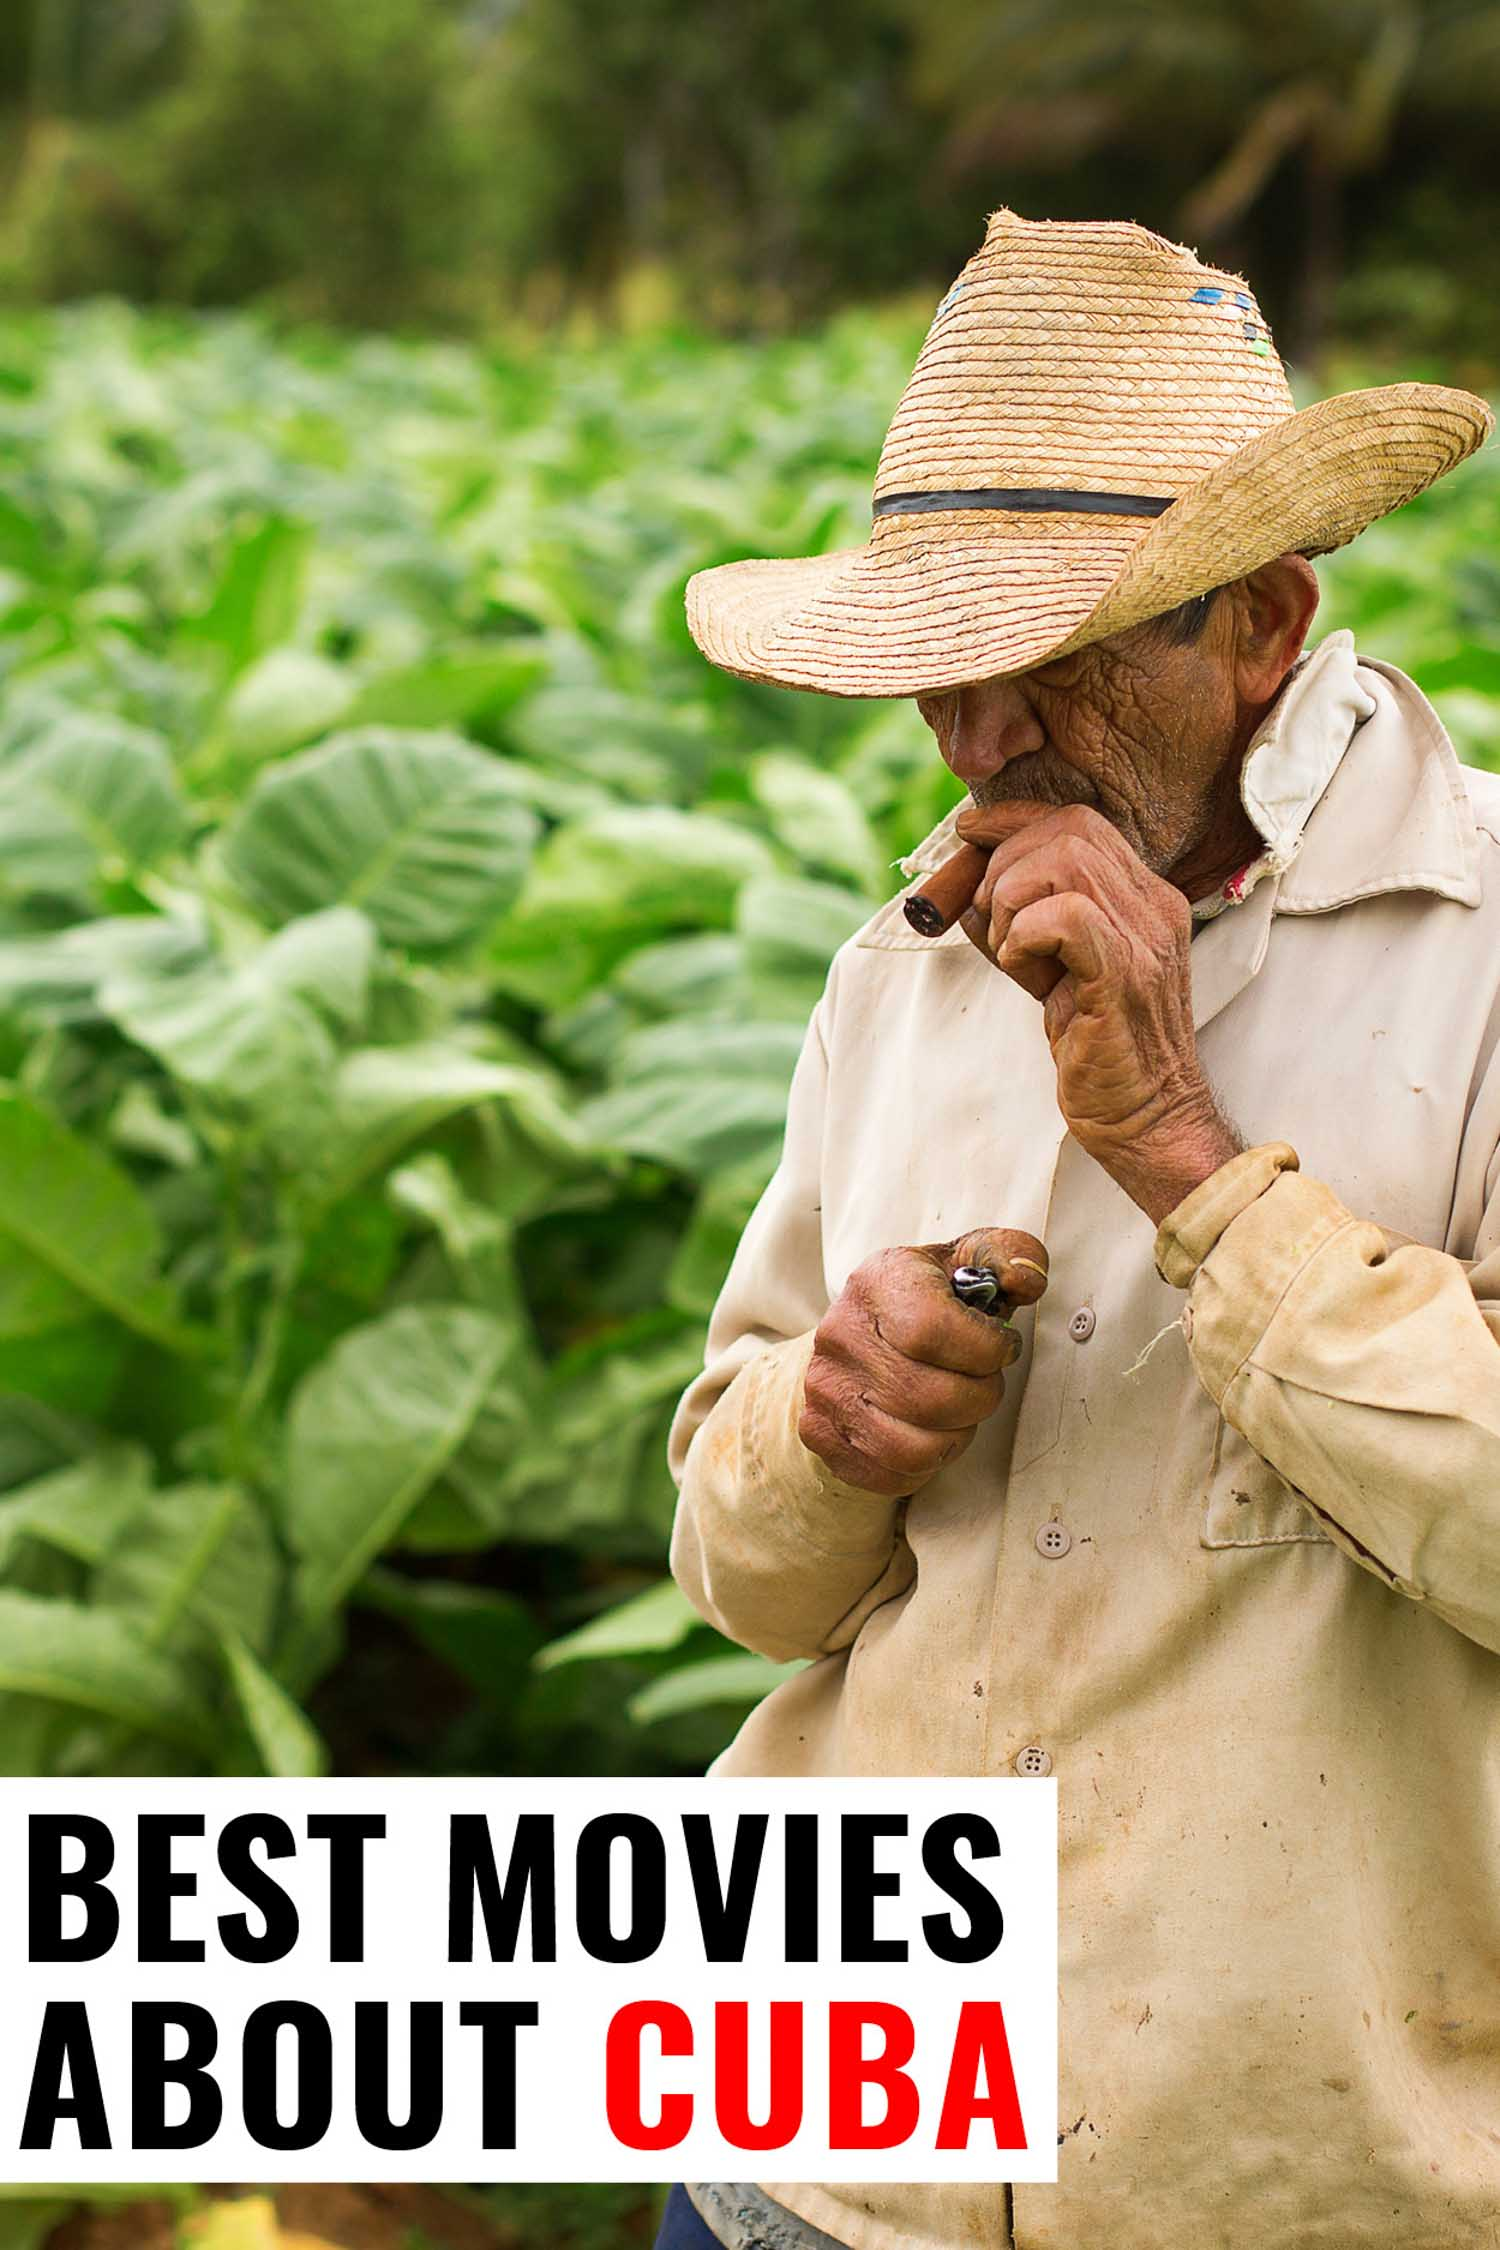 Tobacco farmer in Vinales Cuba with text that says best movies about Cuba